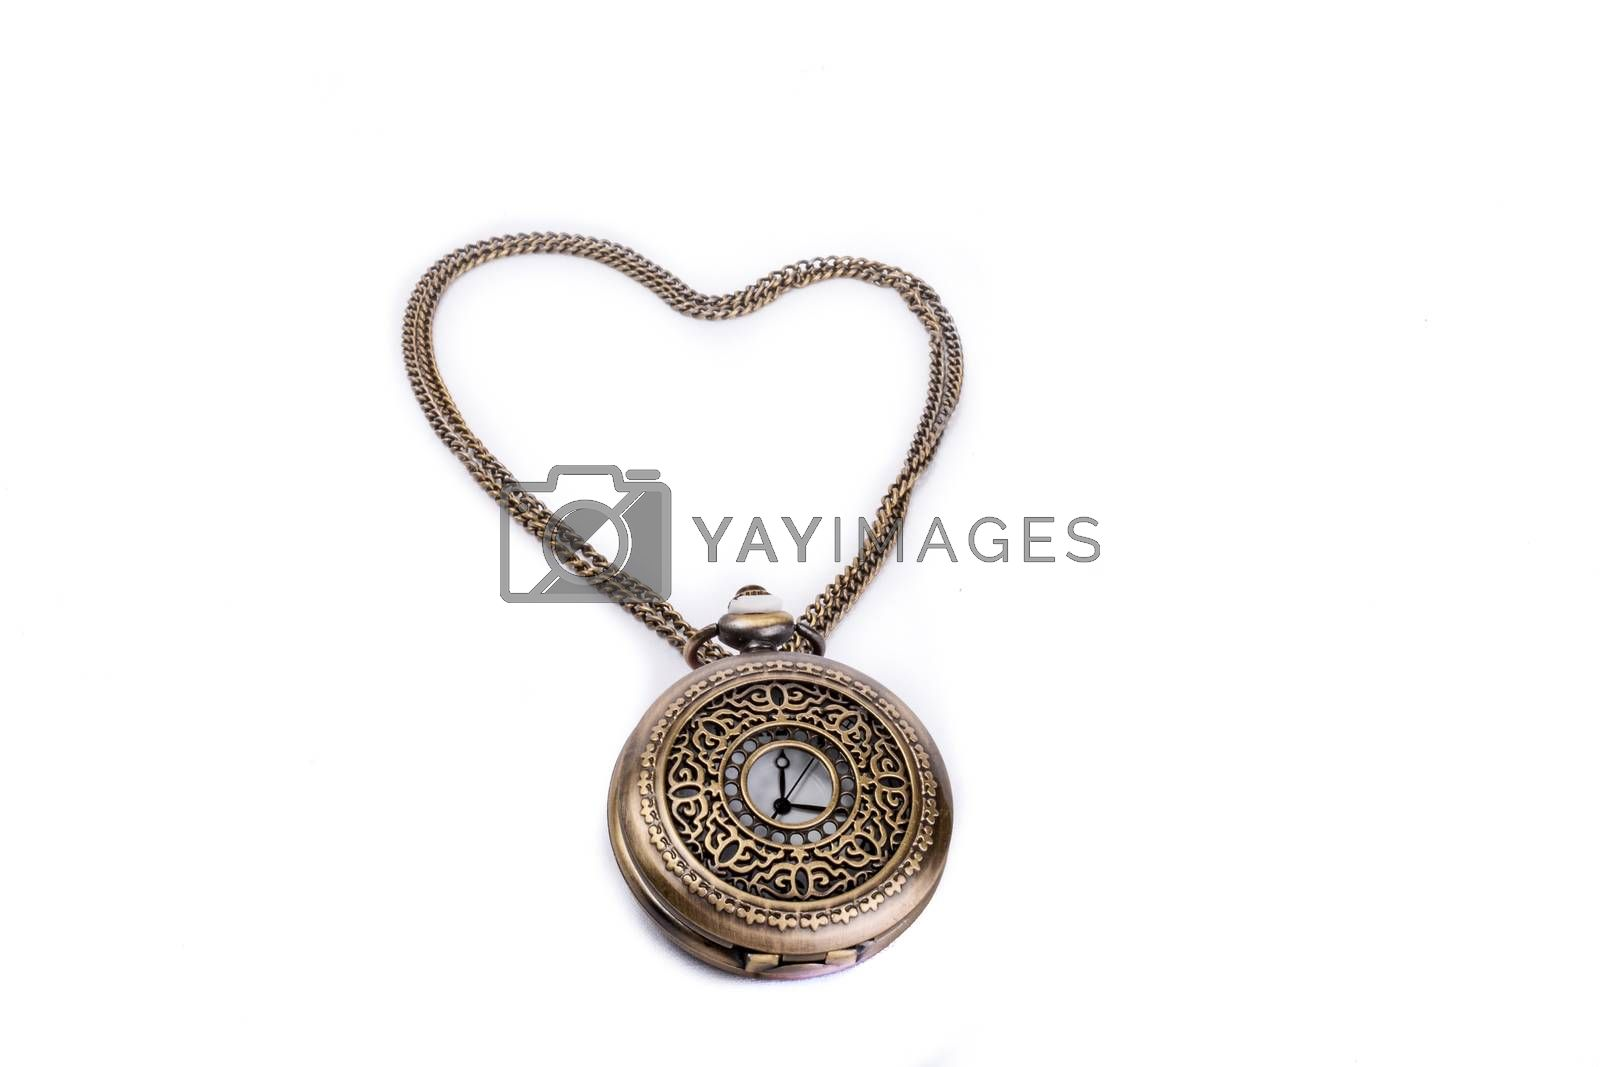 Retro styled pocket watch and its chain form a heart on a white background